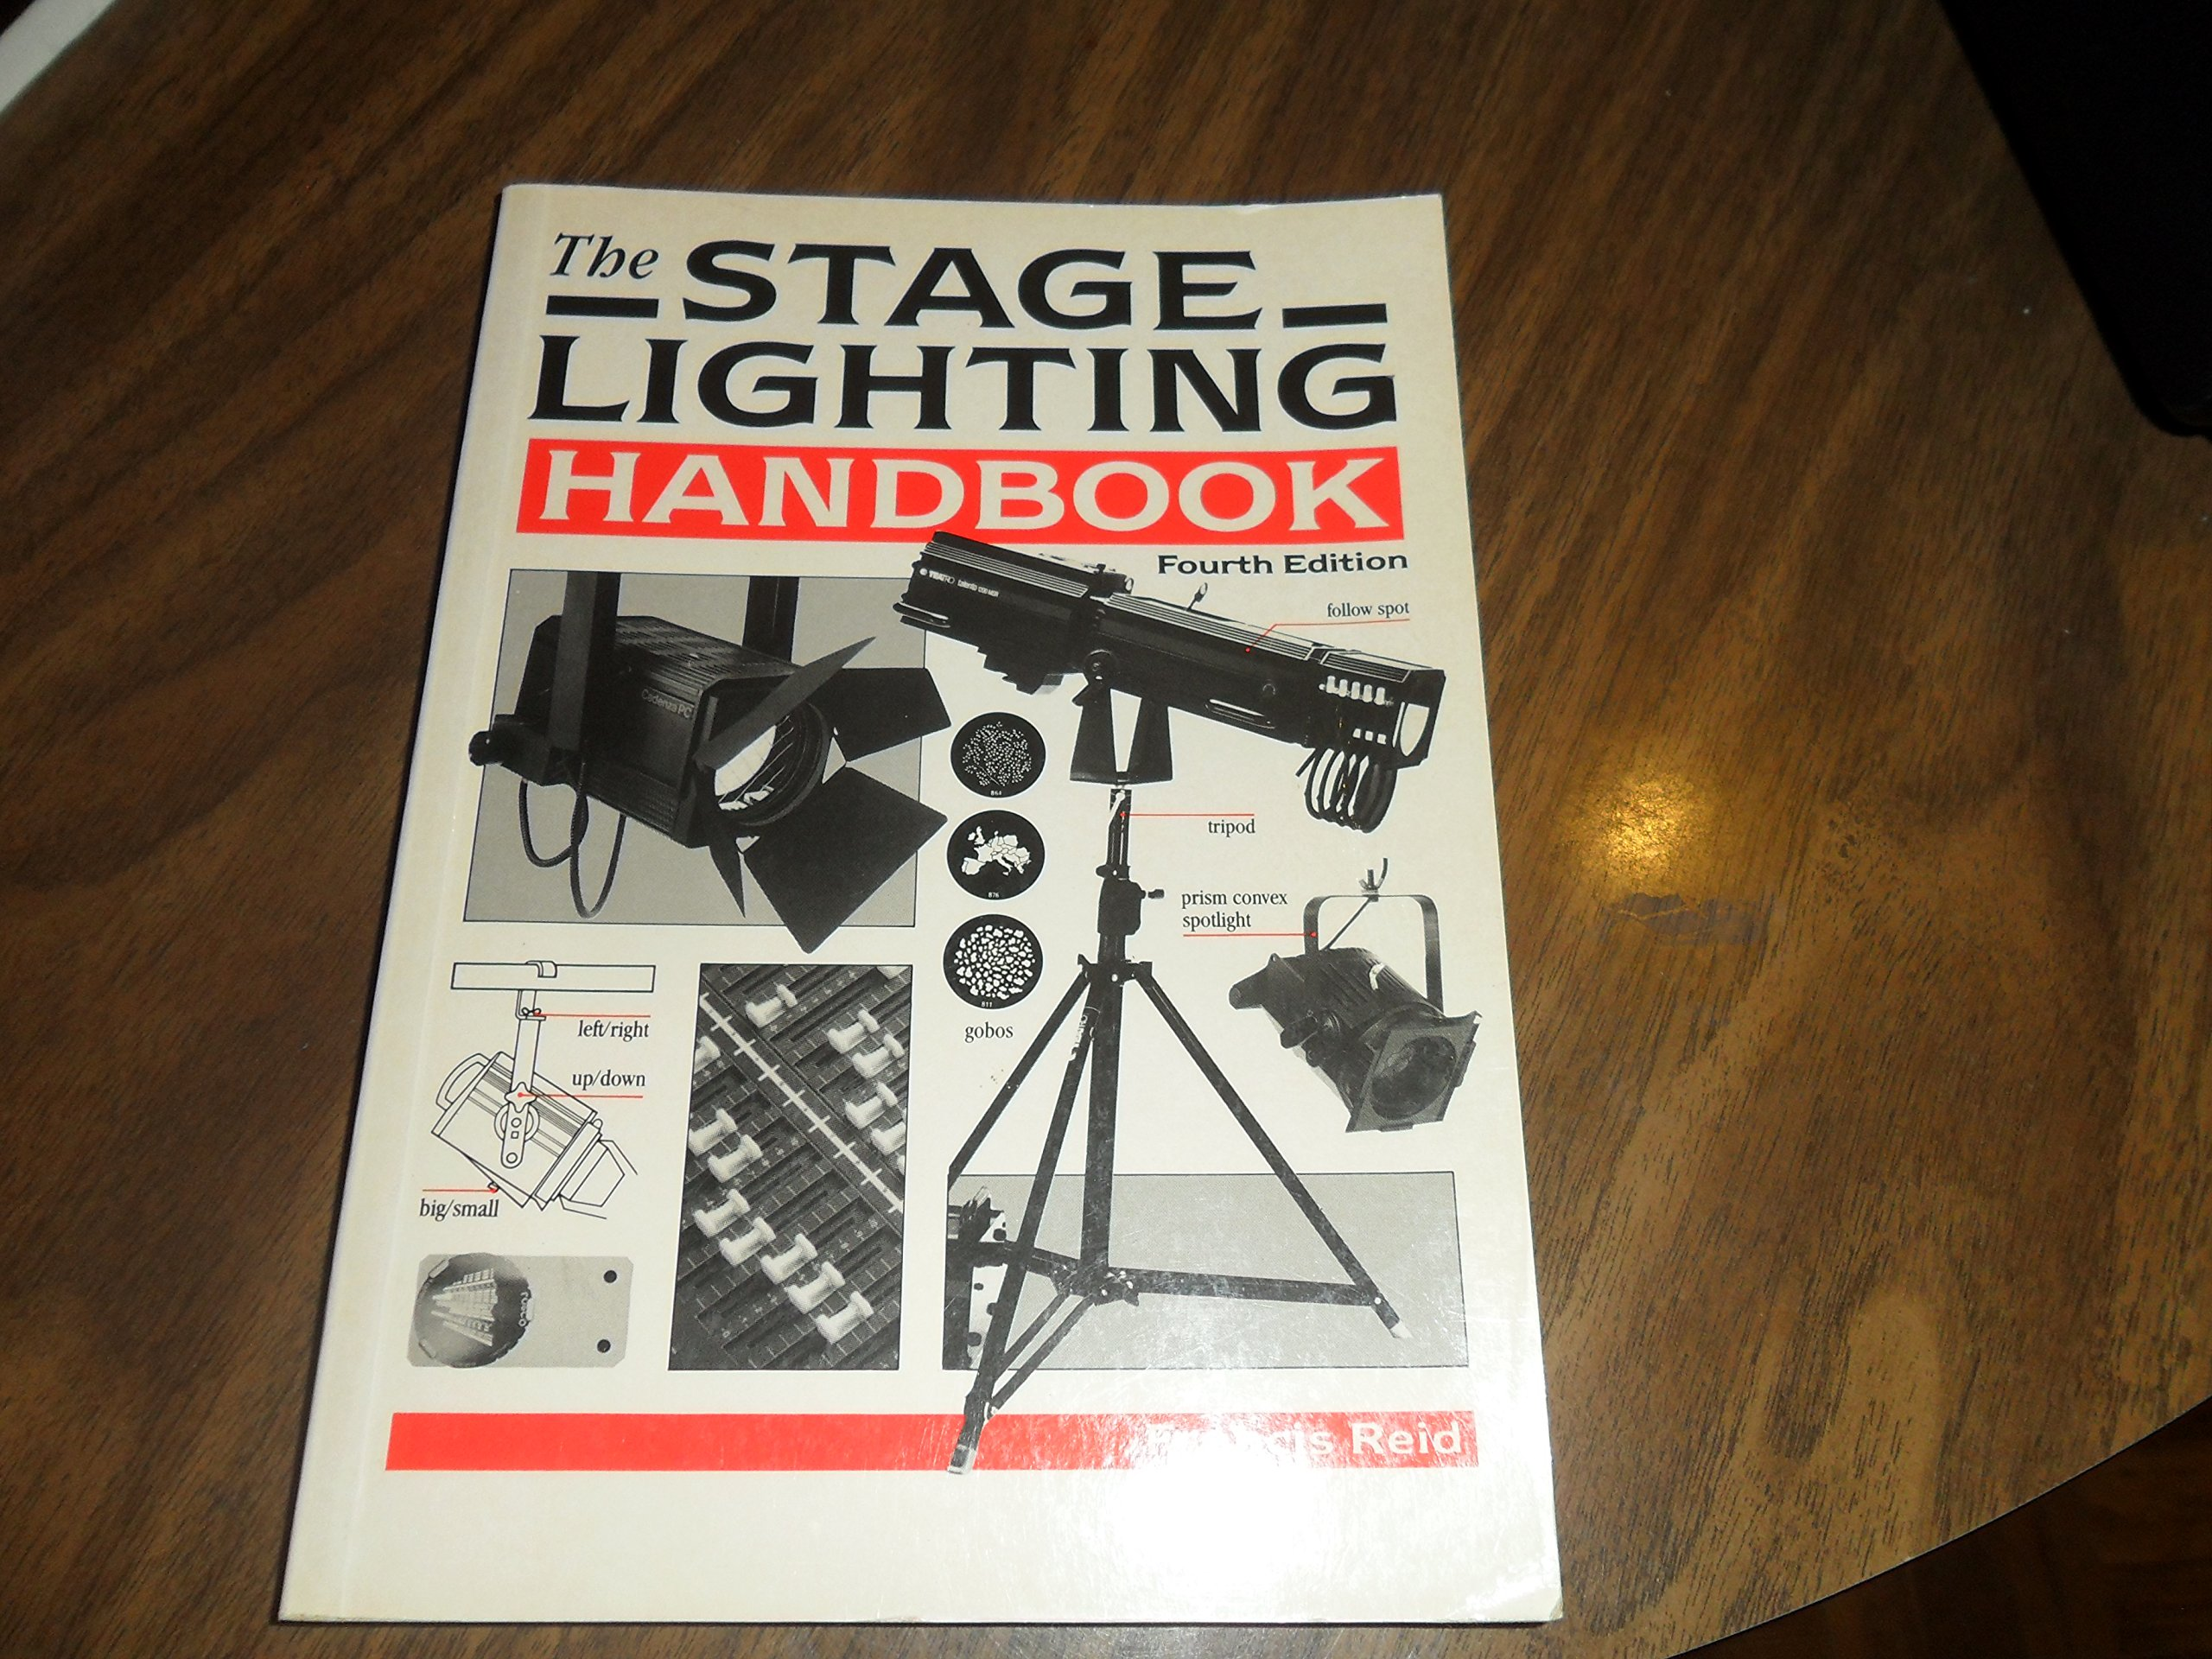 Buy The Stage Lighting Handbook Book Online at Low Prices in